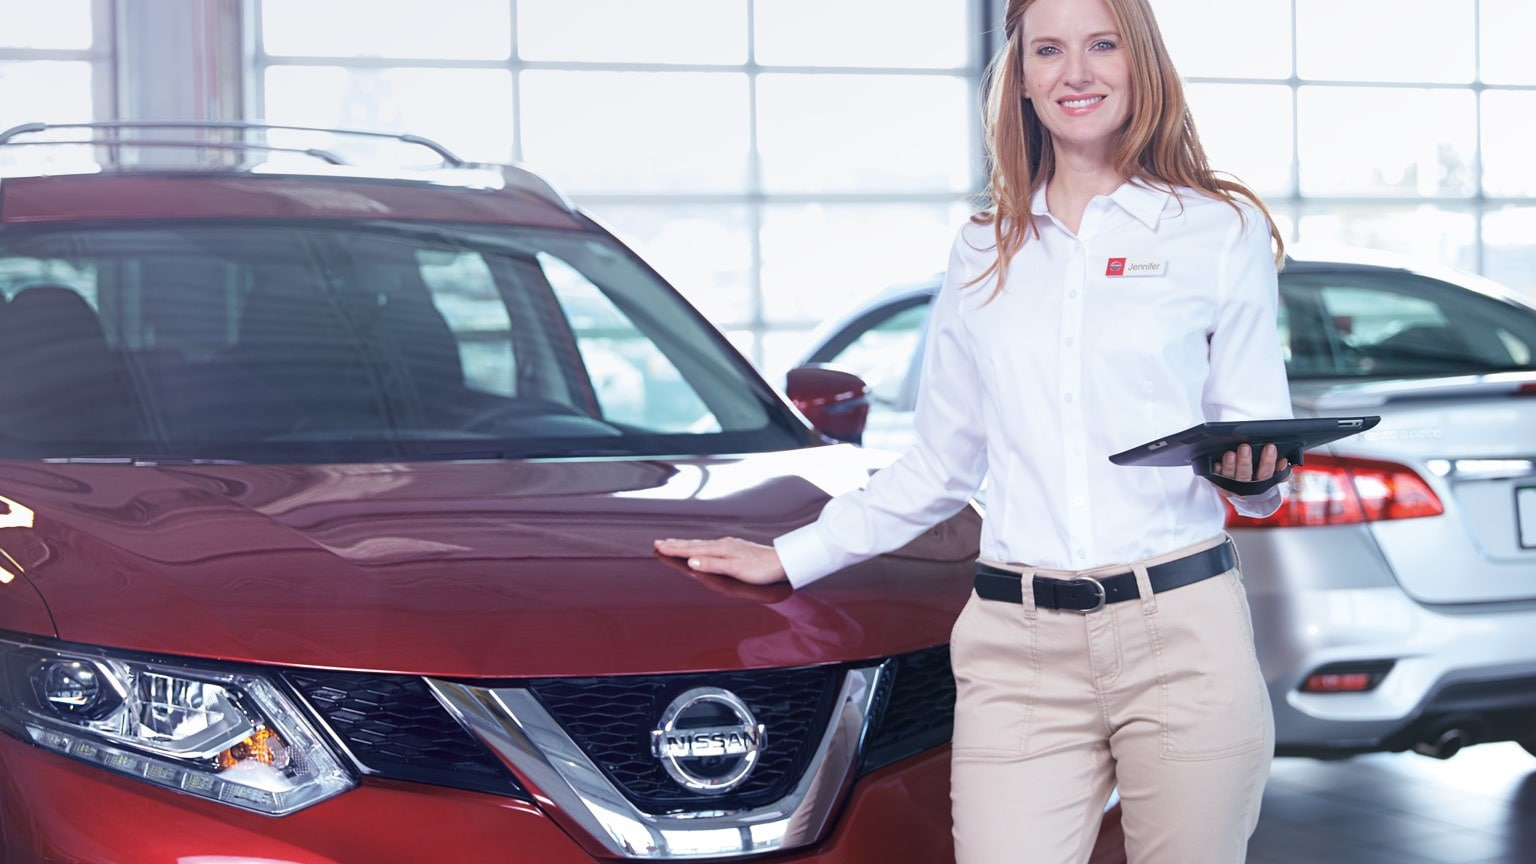 Nissan Auto Specials & Incentives in Lake Forest, IL